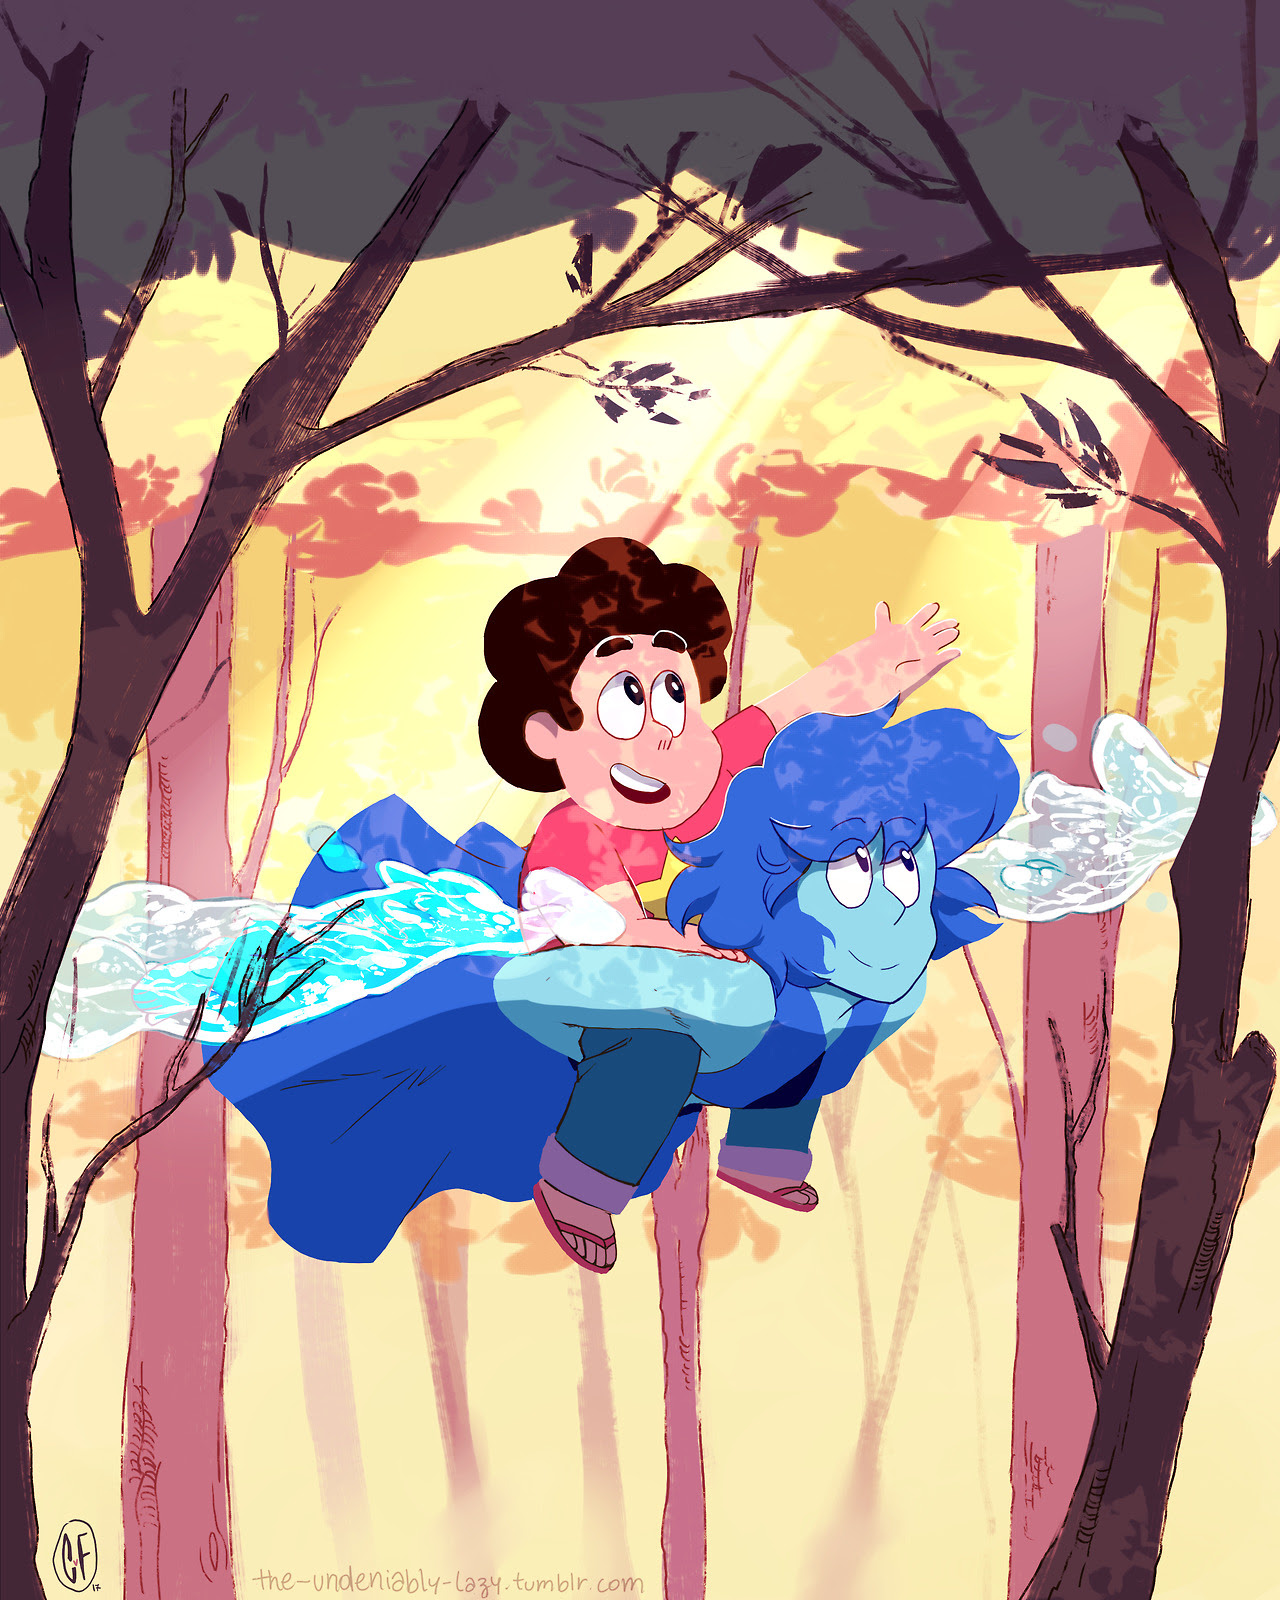 This is my entry for the Lapis meep morp contest hosted by Jennifer Paz :Dc